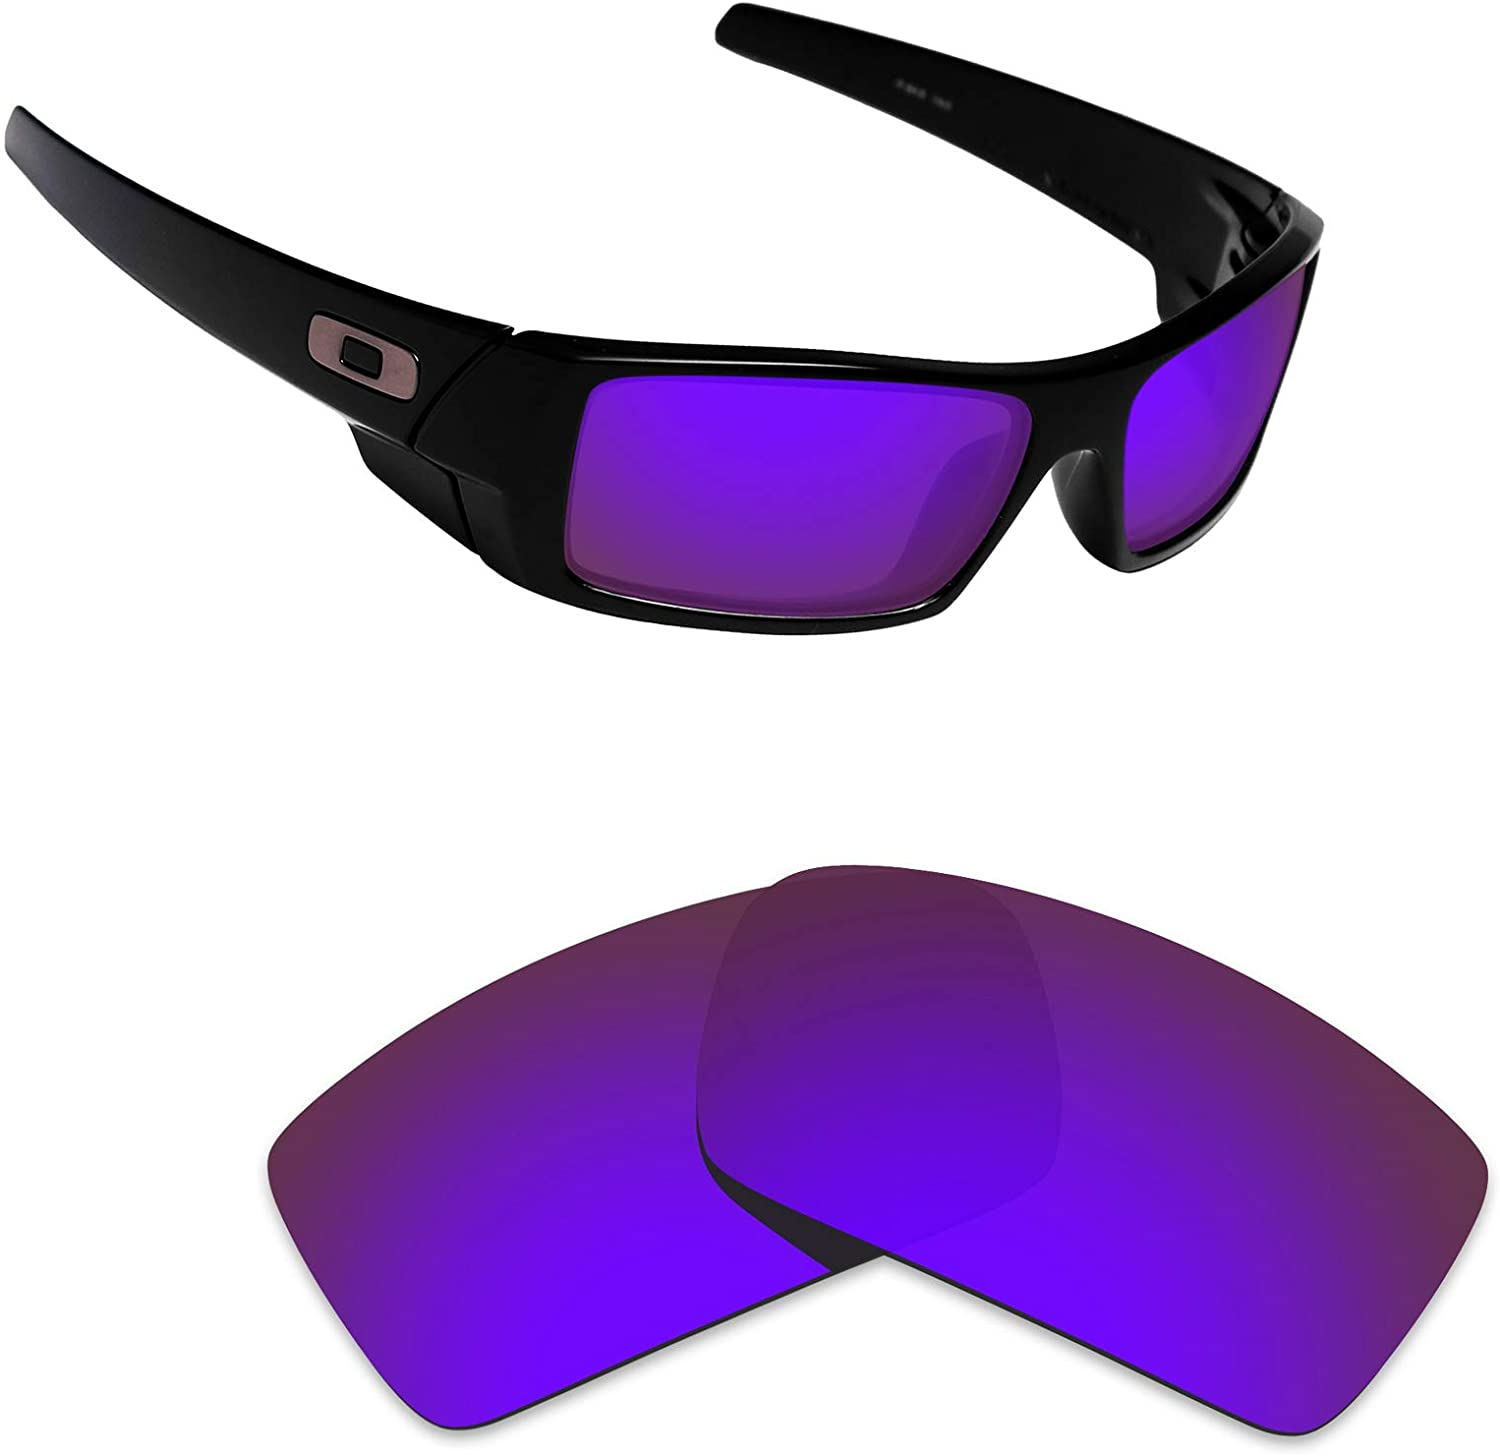 Alphax Polarized Replacement Lenses for Oakley Gascan - Multiple Options